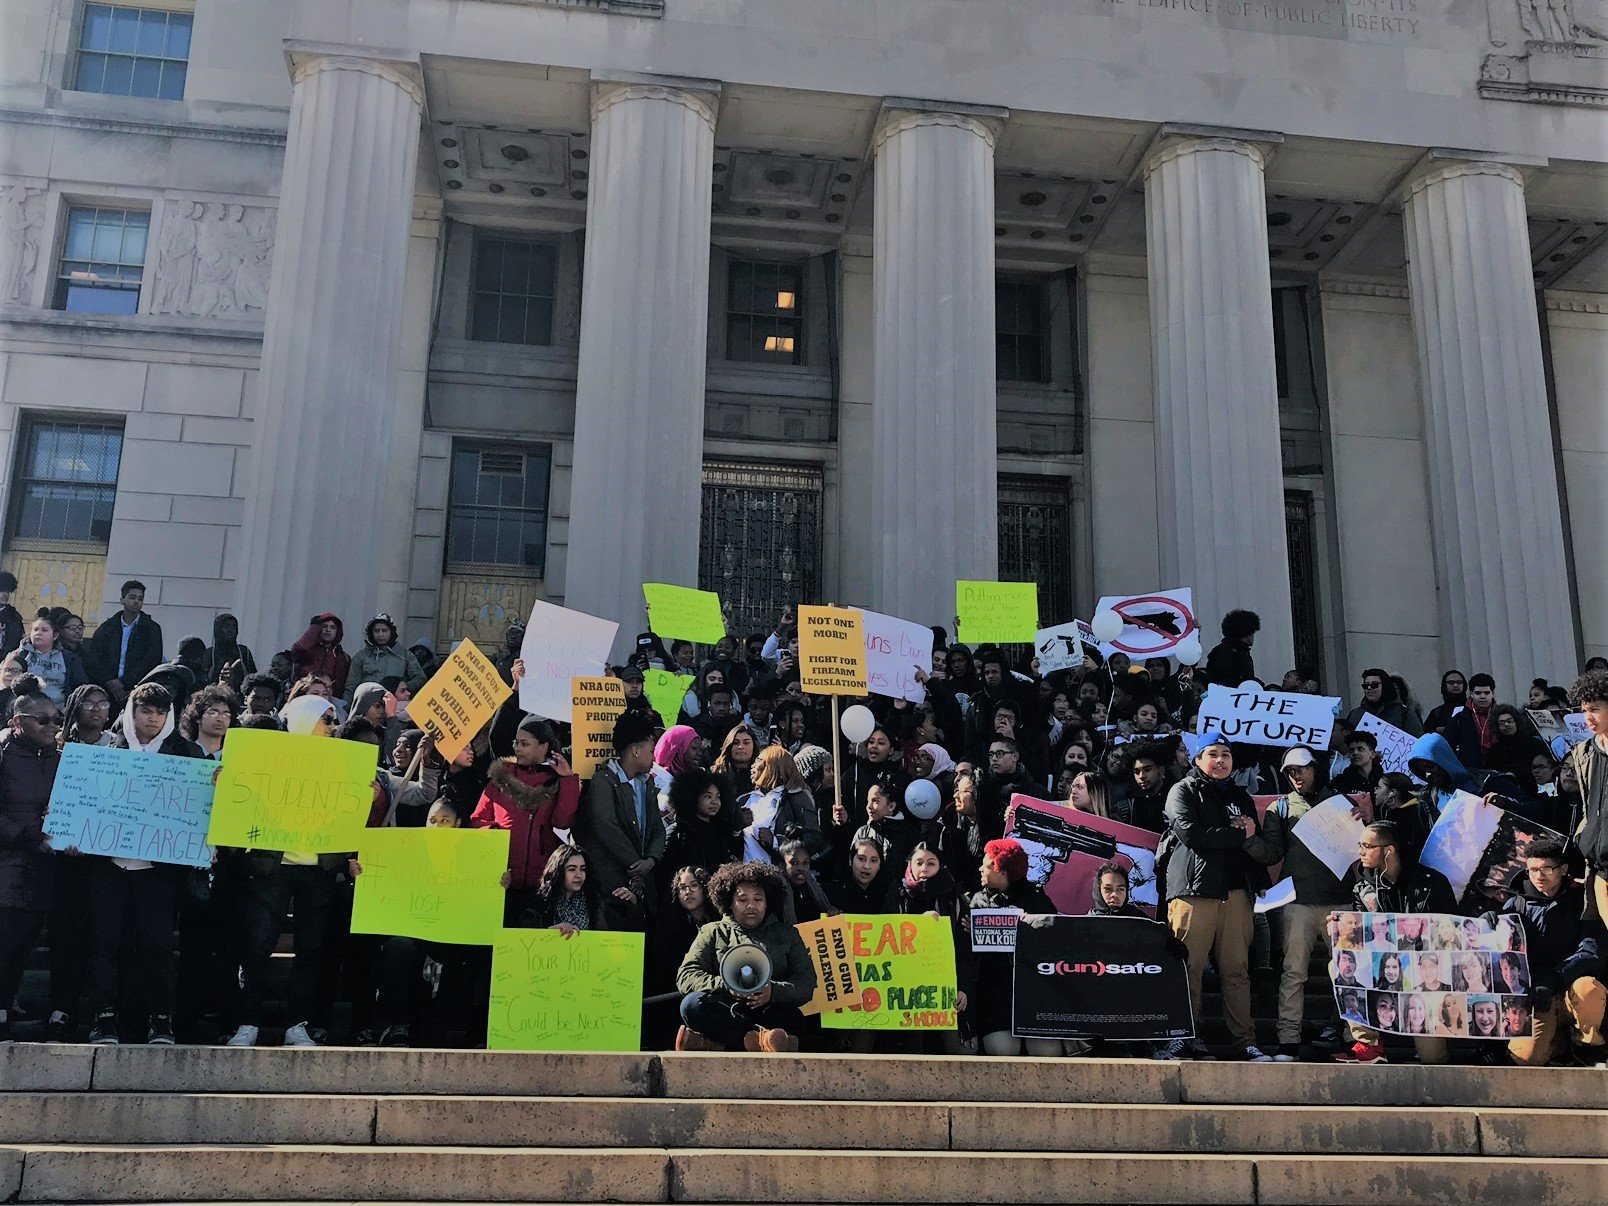 Violence Walkout: Local students seek culture change